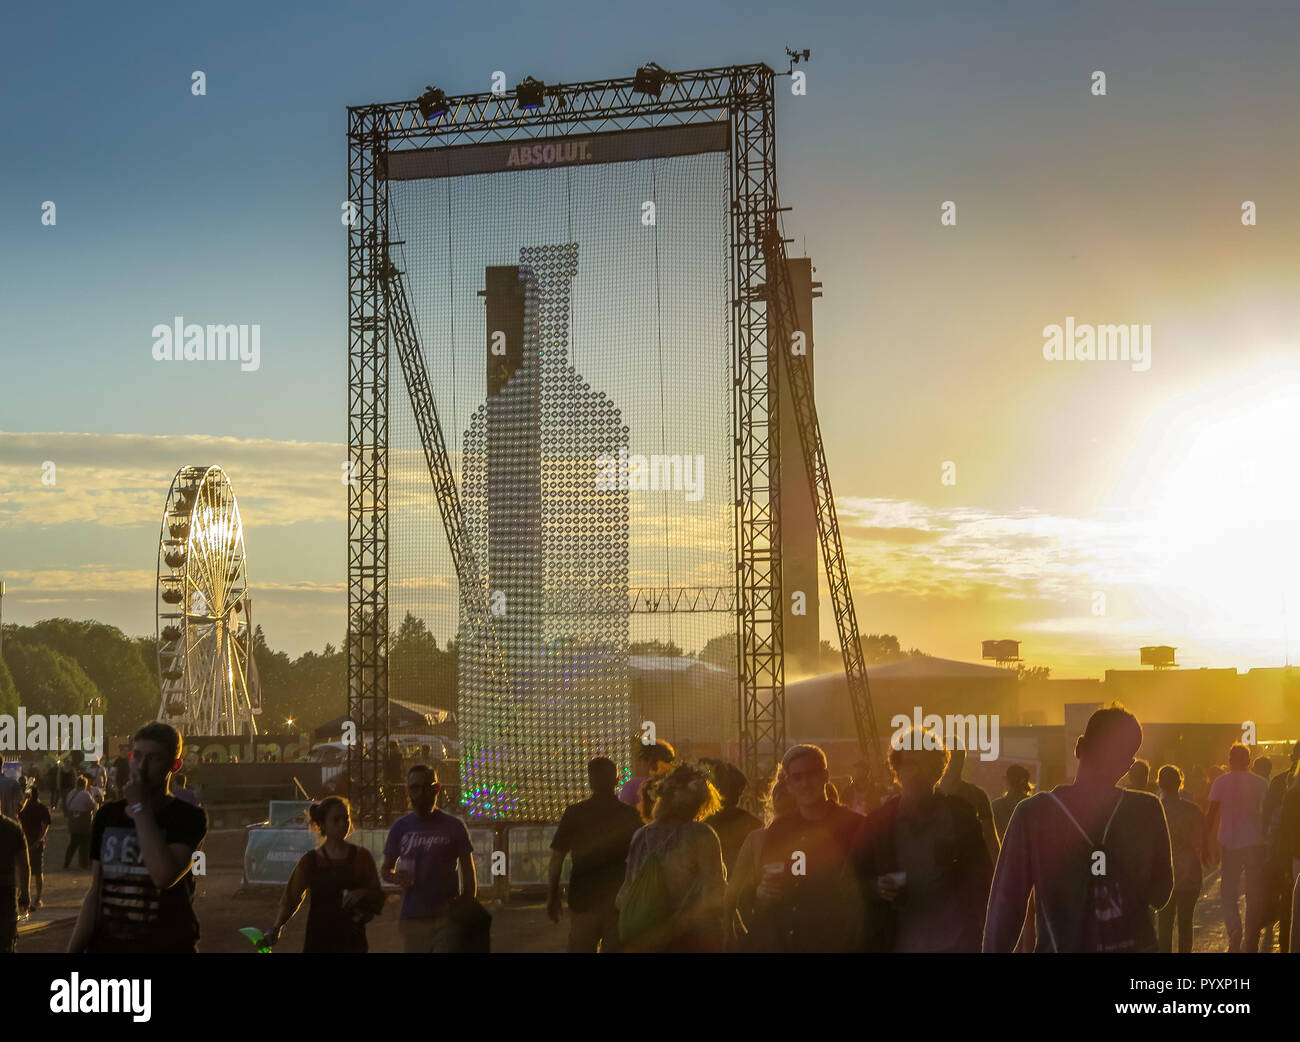 Advertisement Absolutely vodka, Lollapalooza festival, Olympic stadium, Westend, Berlin, Germany, Werbung Absolut Wodka, Lollapalooza-Festival, Olympi - Stock Image